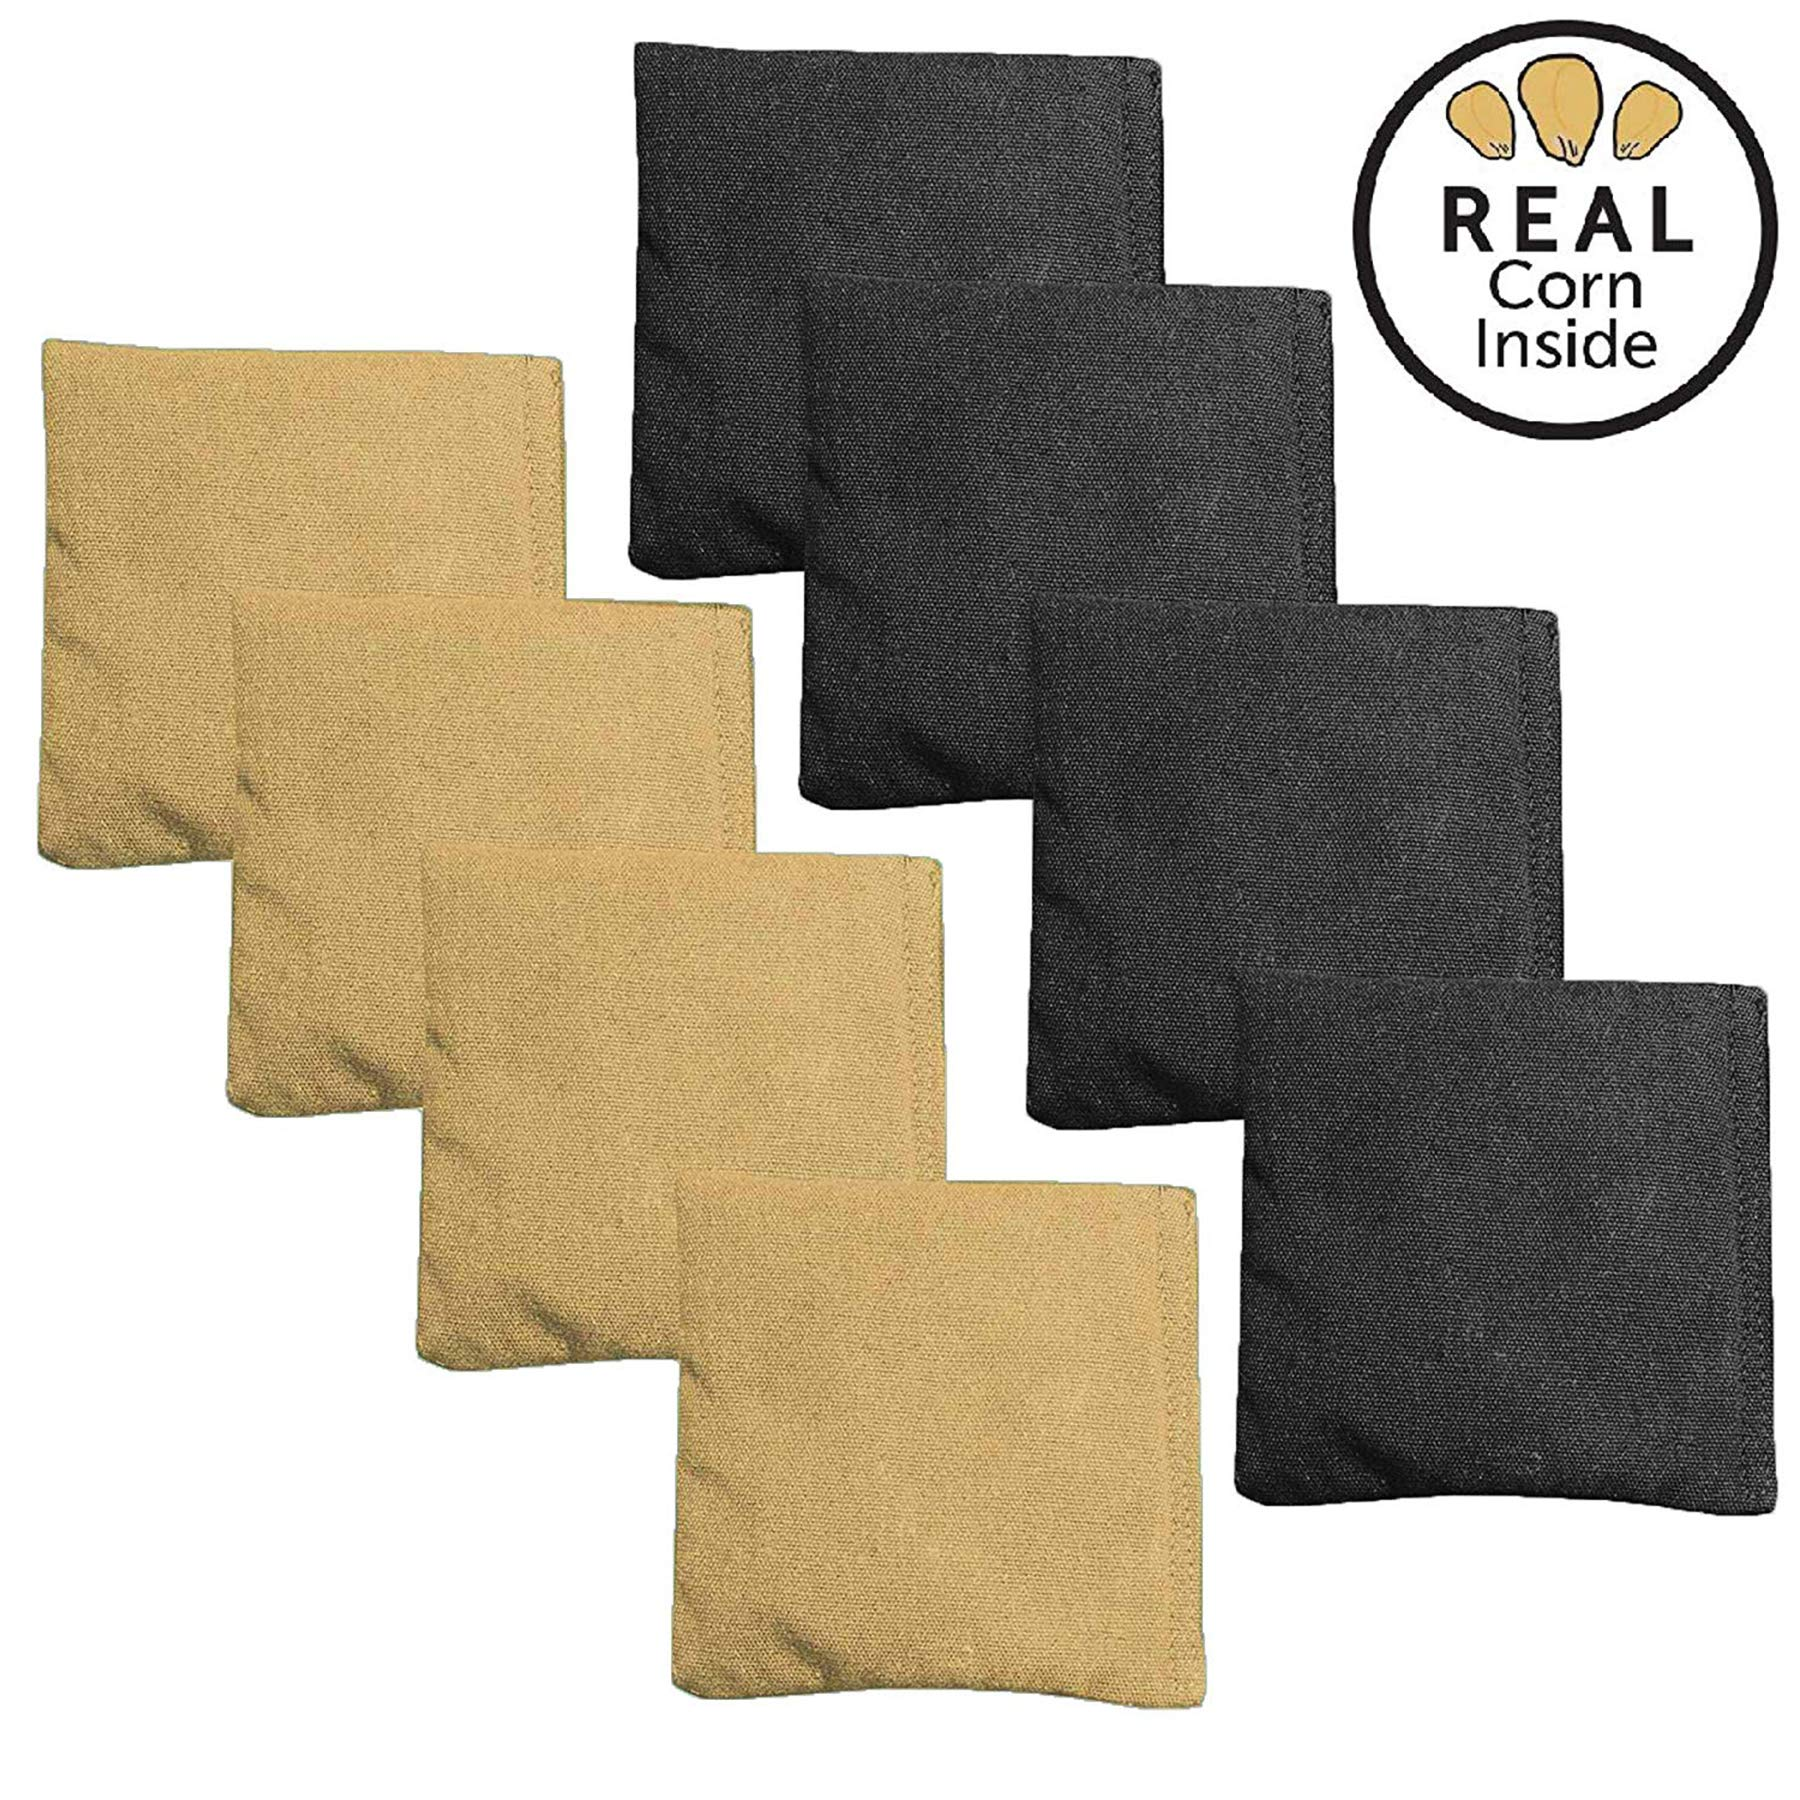 Corn Filled Cornhole Bags - Set of 8 Bean Bags for Corn Hole Game - Regulation Size & Weight - Black & Gold by Play Platoon